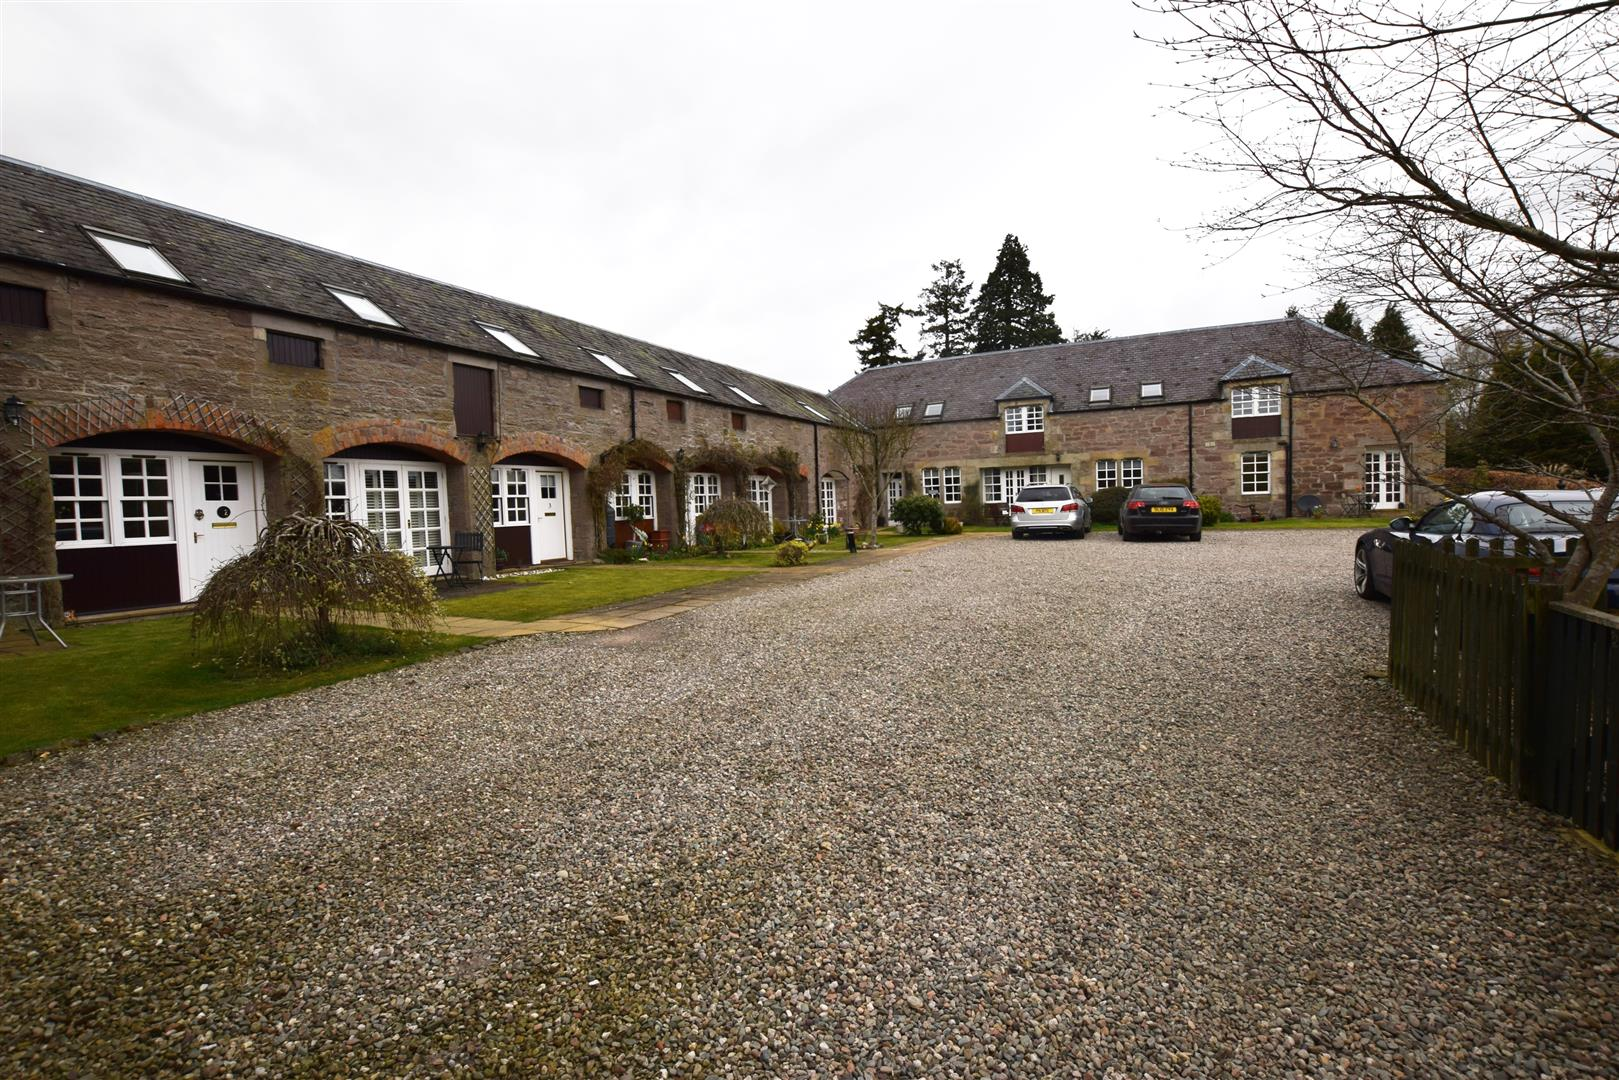 7, The Steadings, Luncarty, Luncarty, Perthshire, PH1 3HE, UK